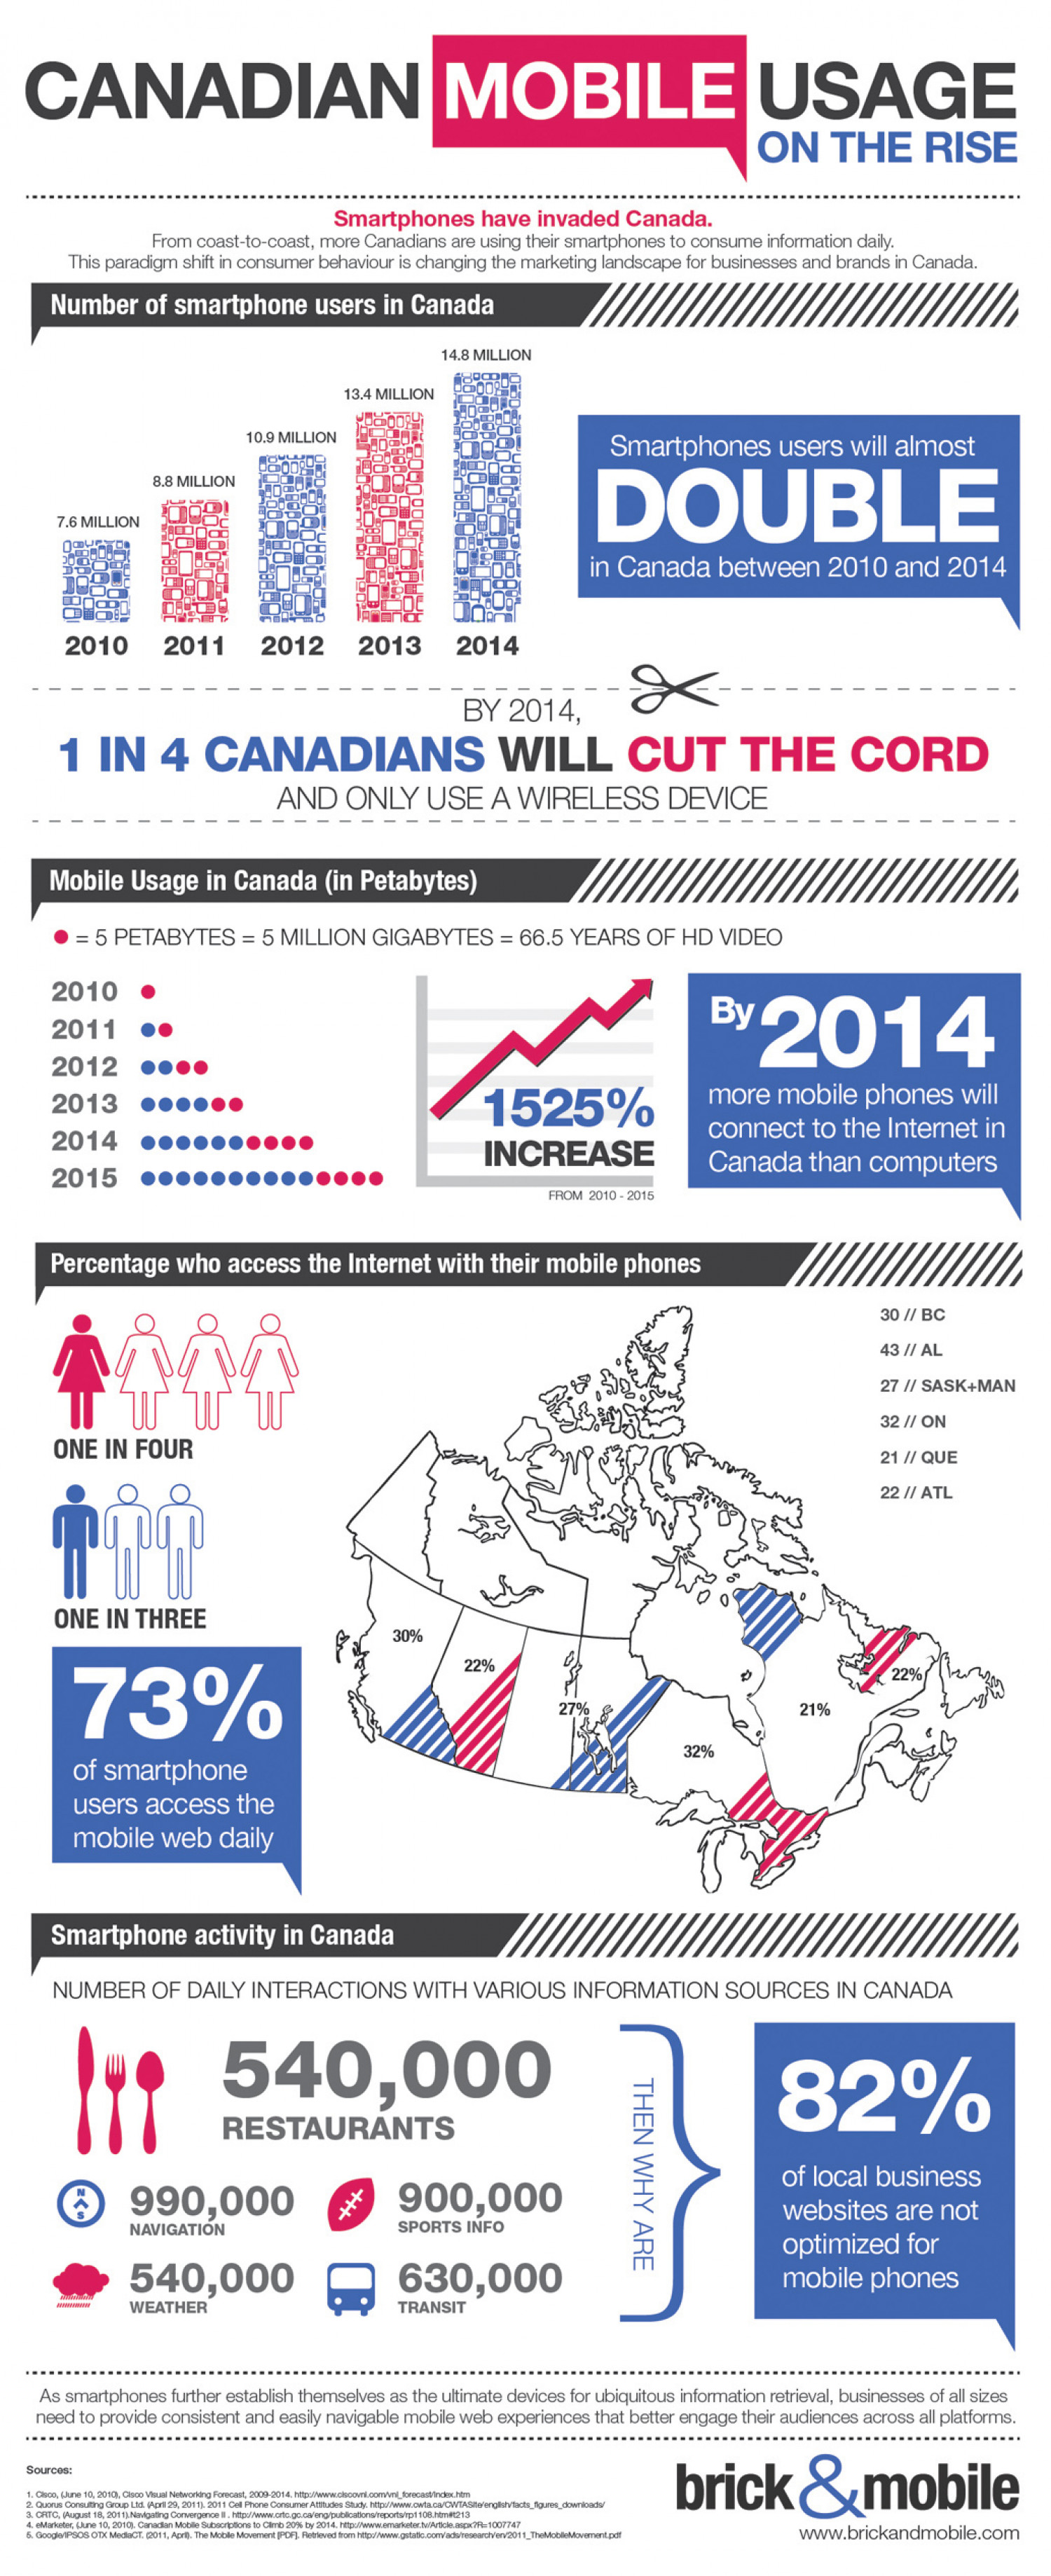 Canadian Mobile Usage on the Rise Infographic